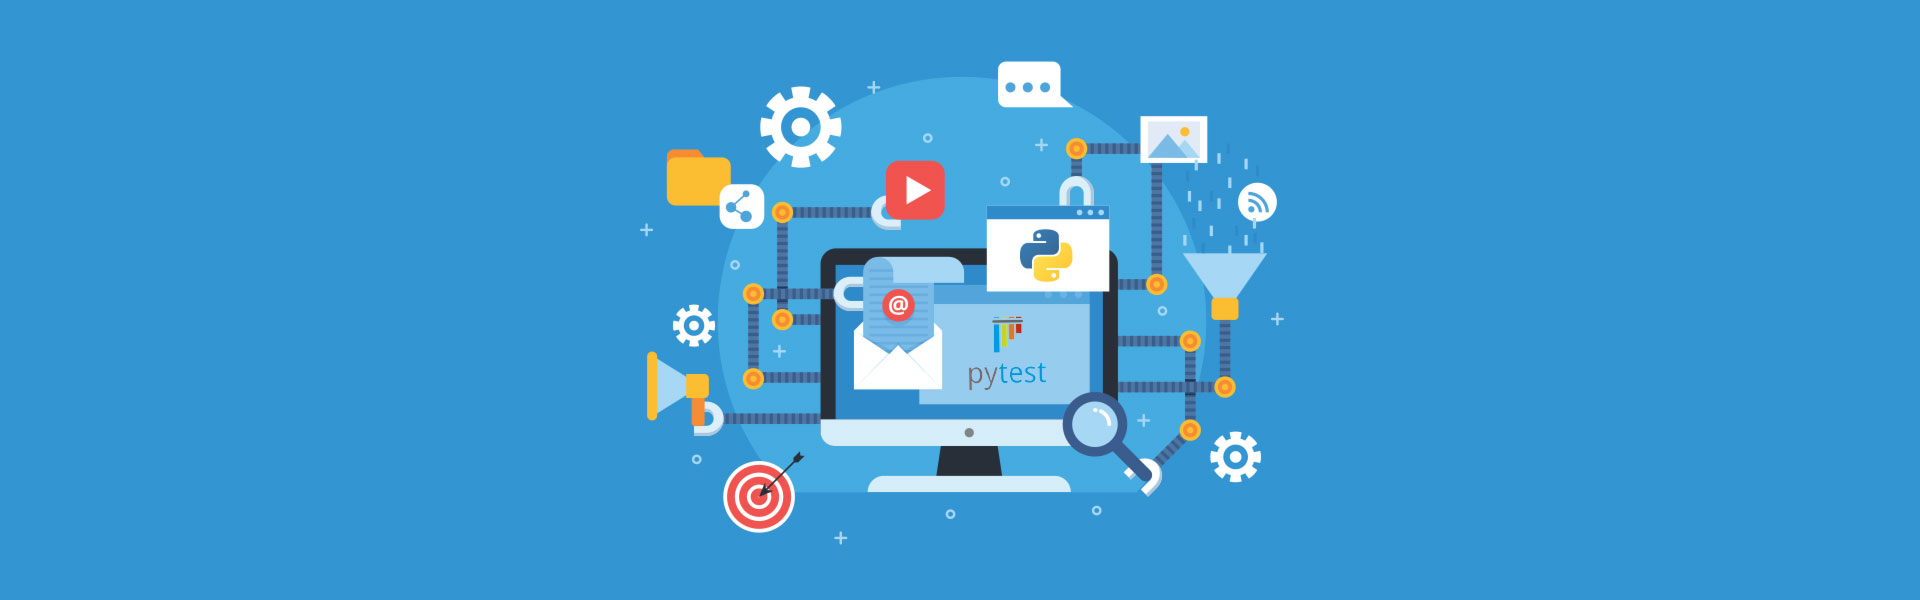 Create A Python Test Automation Project Using Pytest